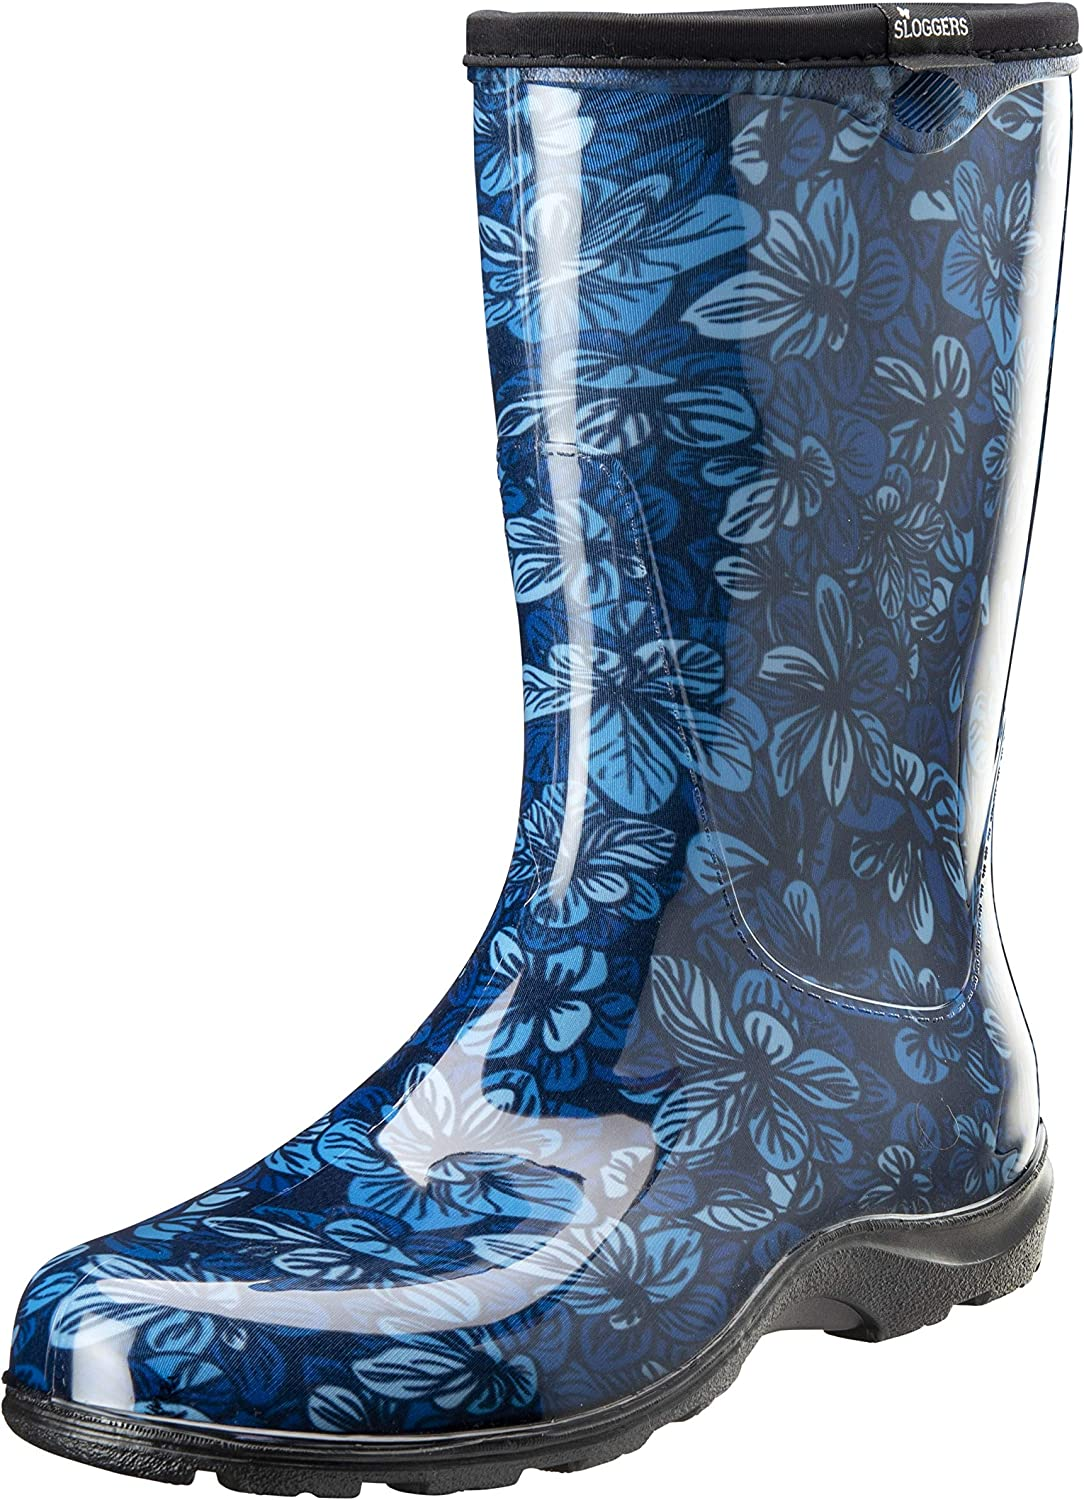 Sloggers Women's Waterproof Rain and Garden Boot with Comfort Insole (7, Blooming Leaves Blue)